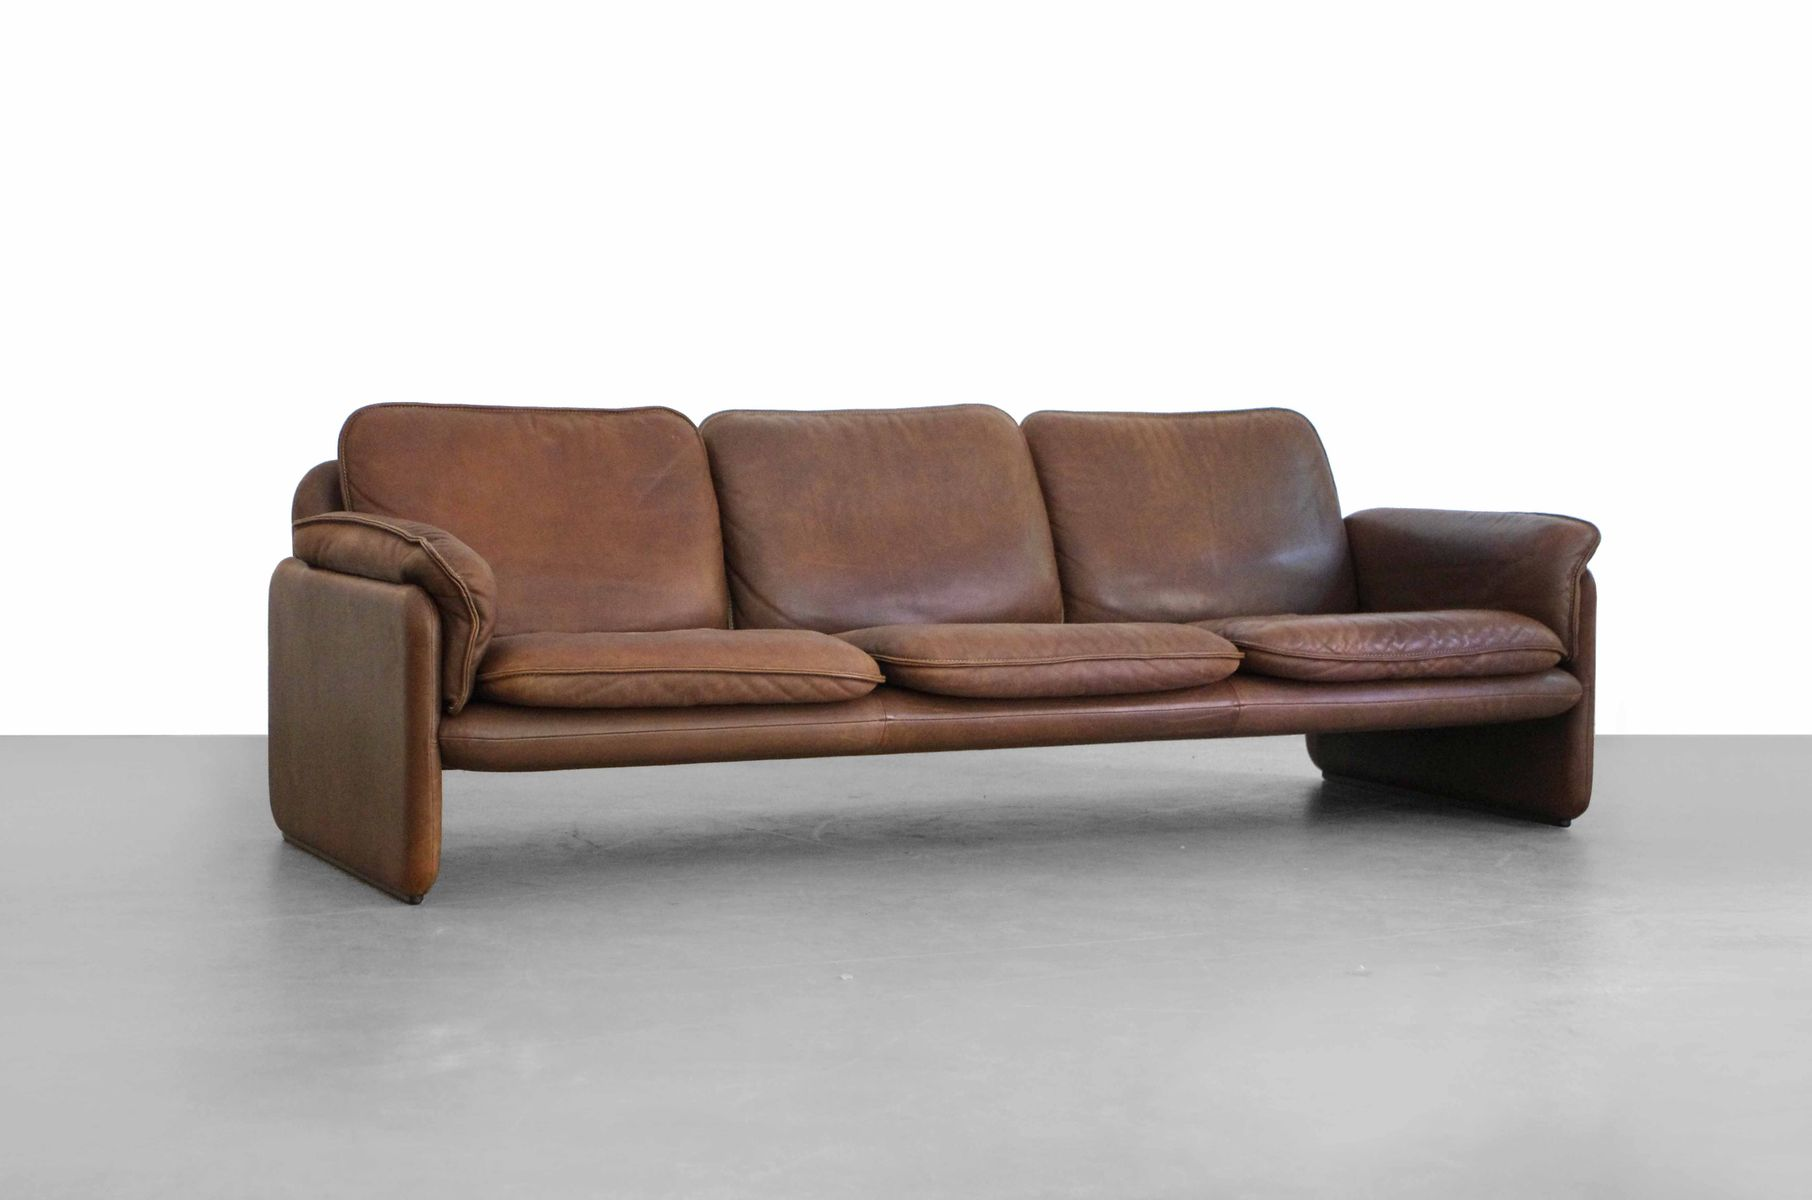 ds 61 leather sofa by de sede for sale at pamono. Black Bedroom Furniture Sets. Home Design Ideas